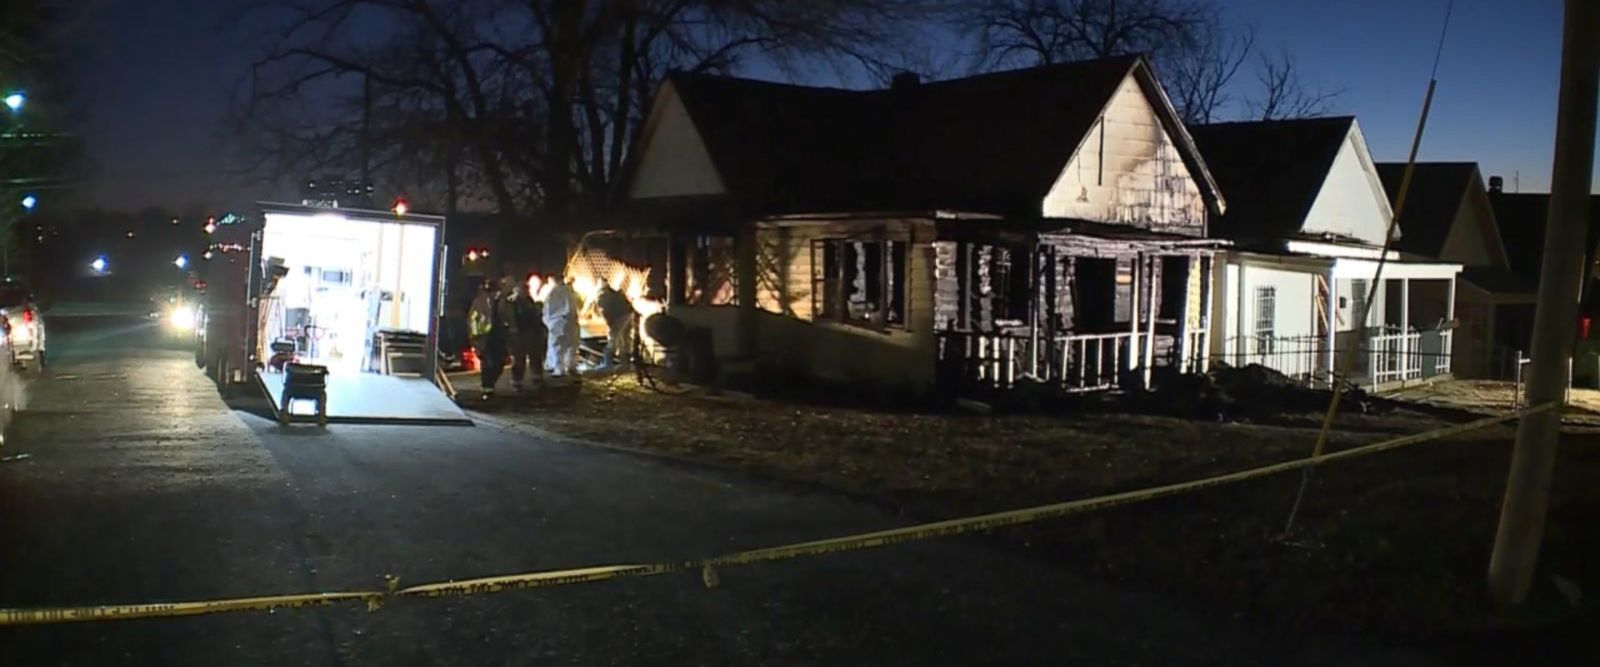 VIDEO: Police are investigating a deadly Kansas house fire as a possible homicide after finding three bodies inside, authorities said Tuesday.